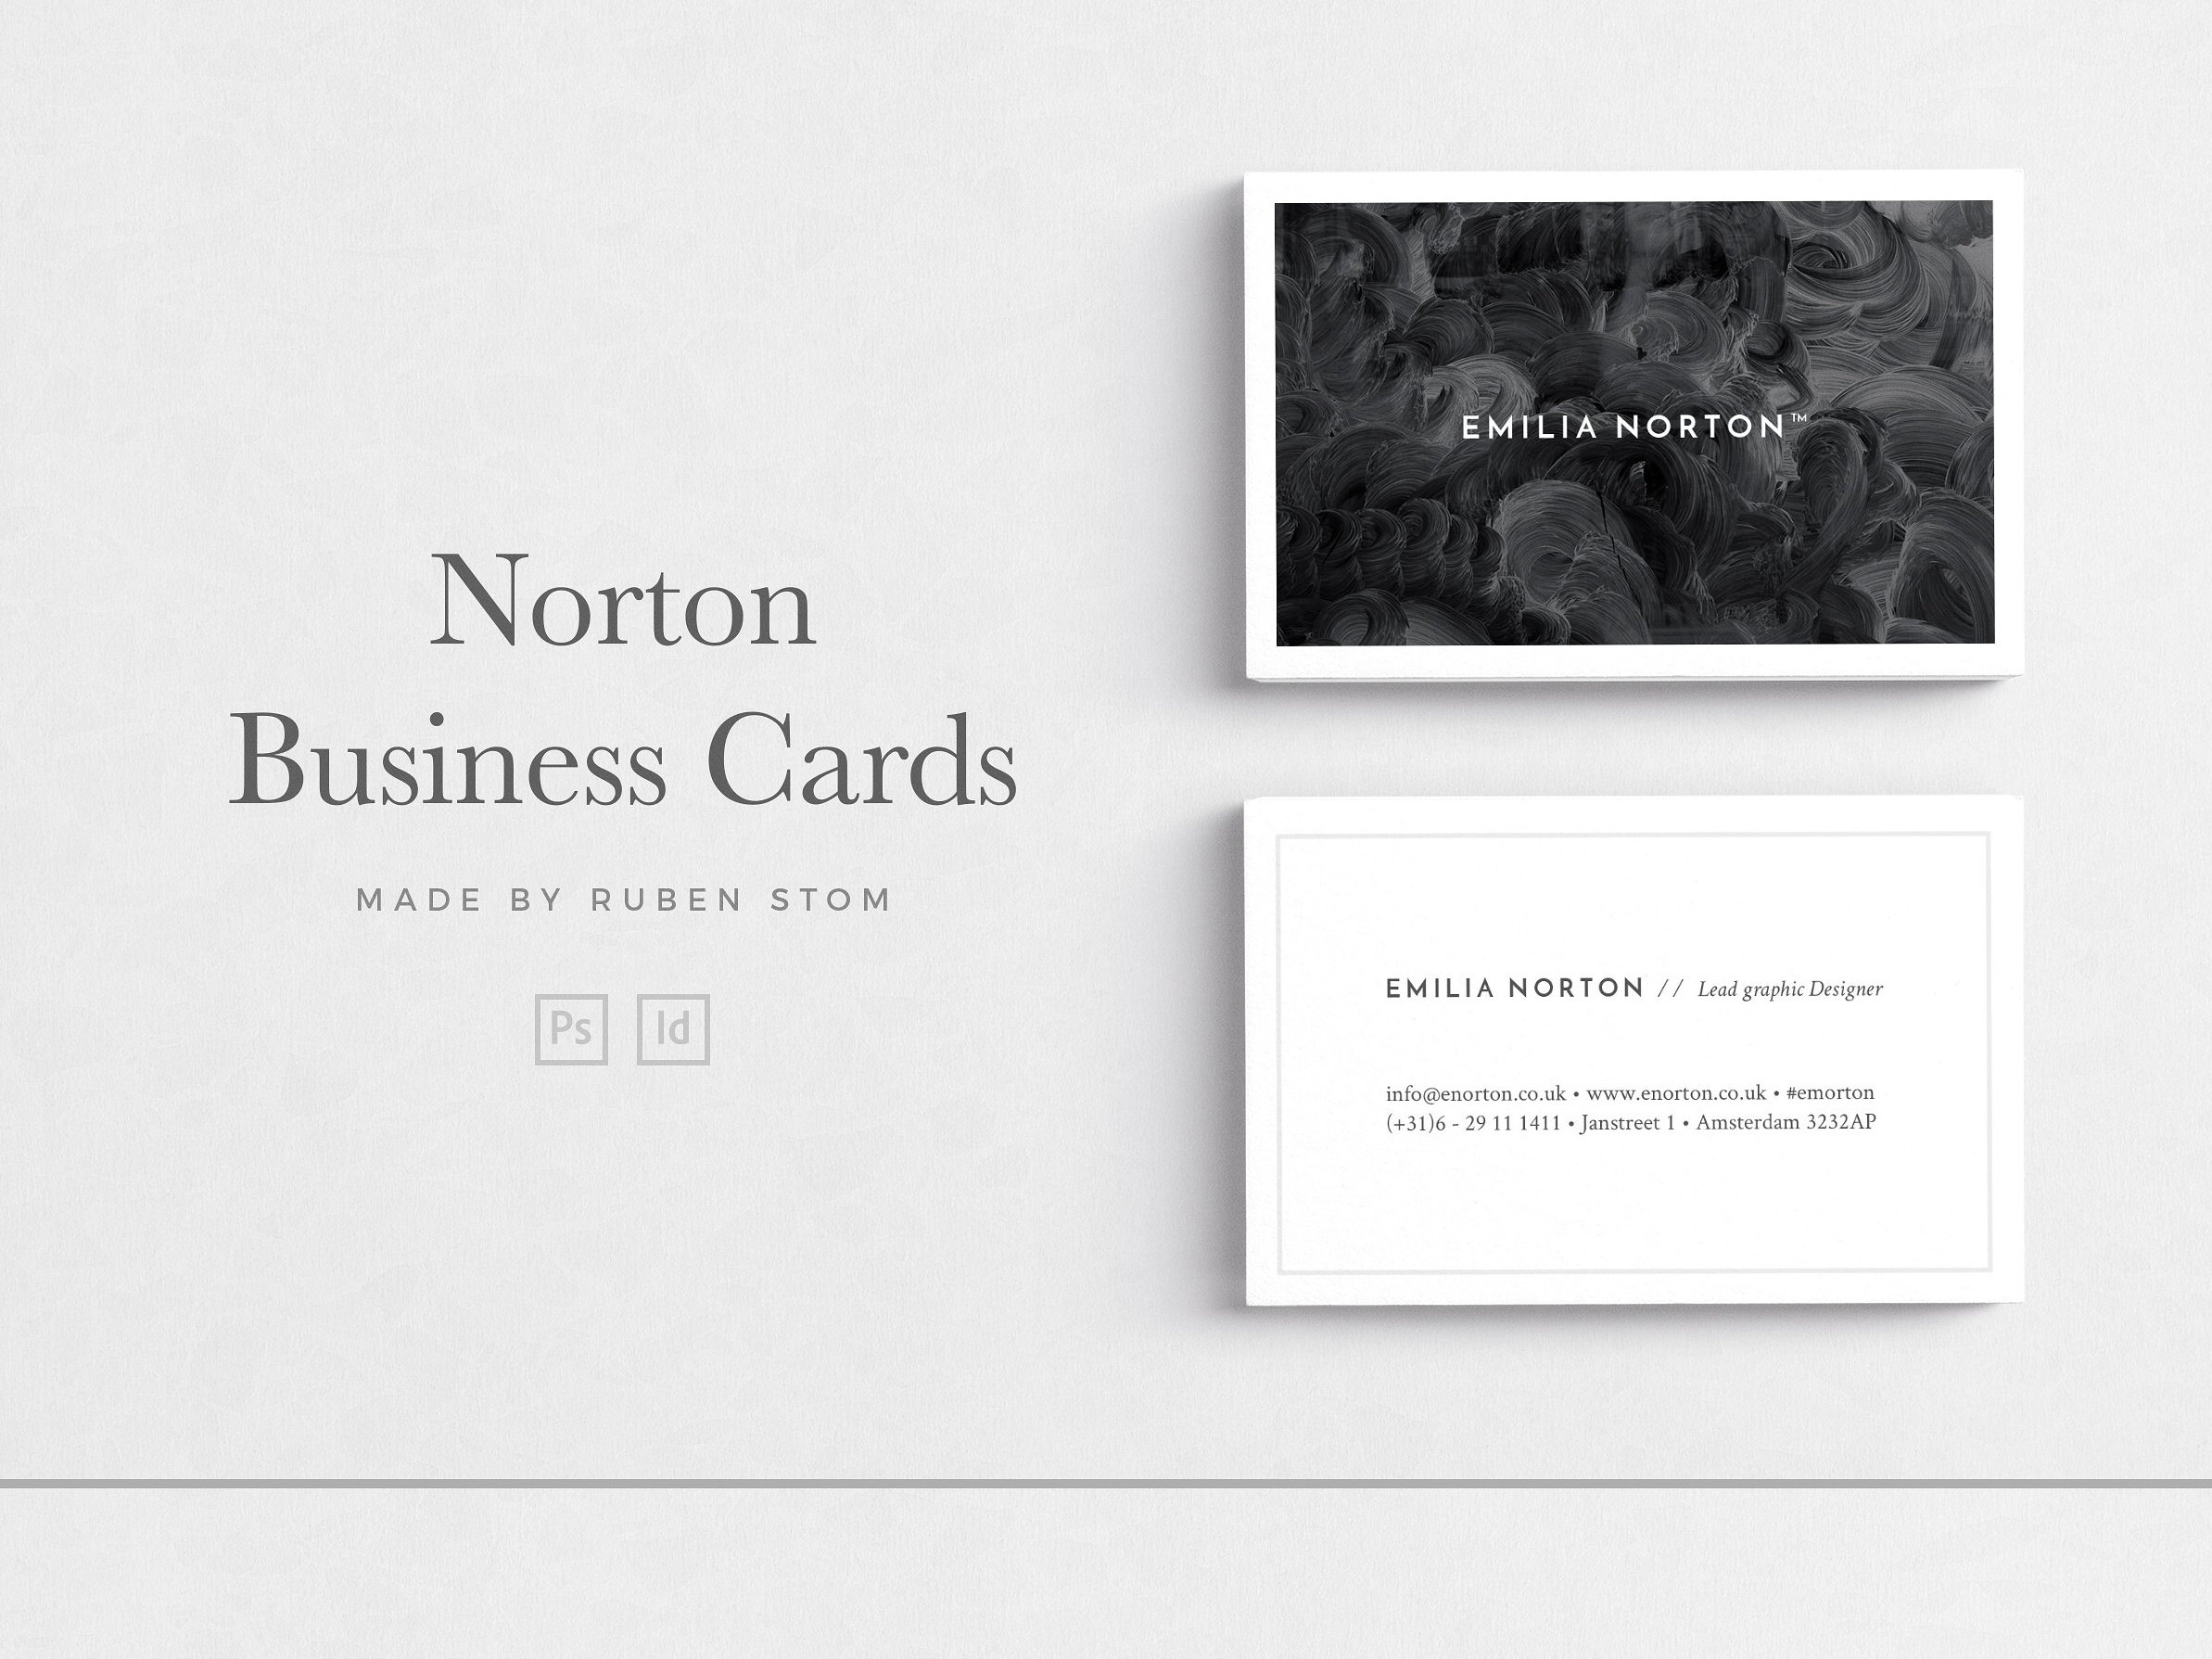 Business Card Template Indesign from cdn.dribbble.com